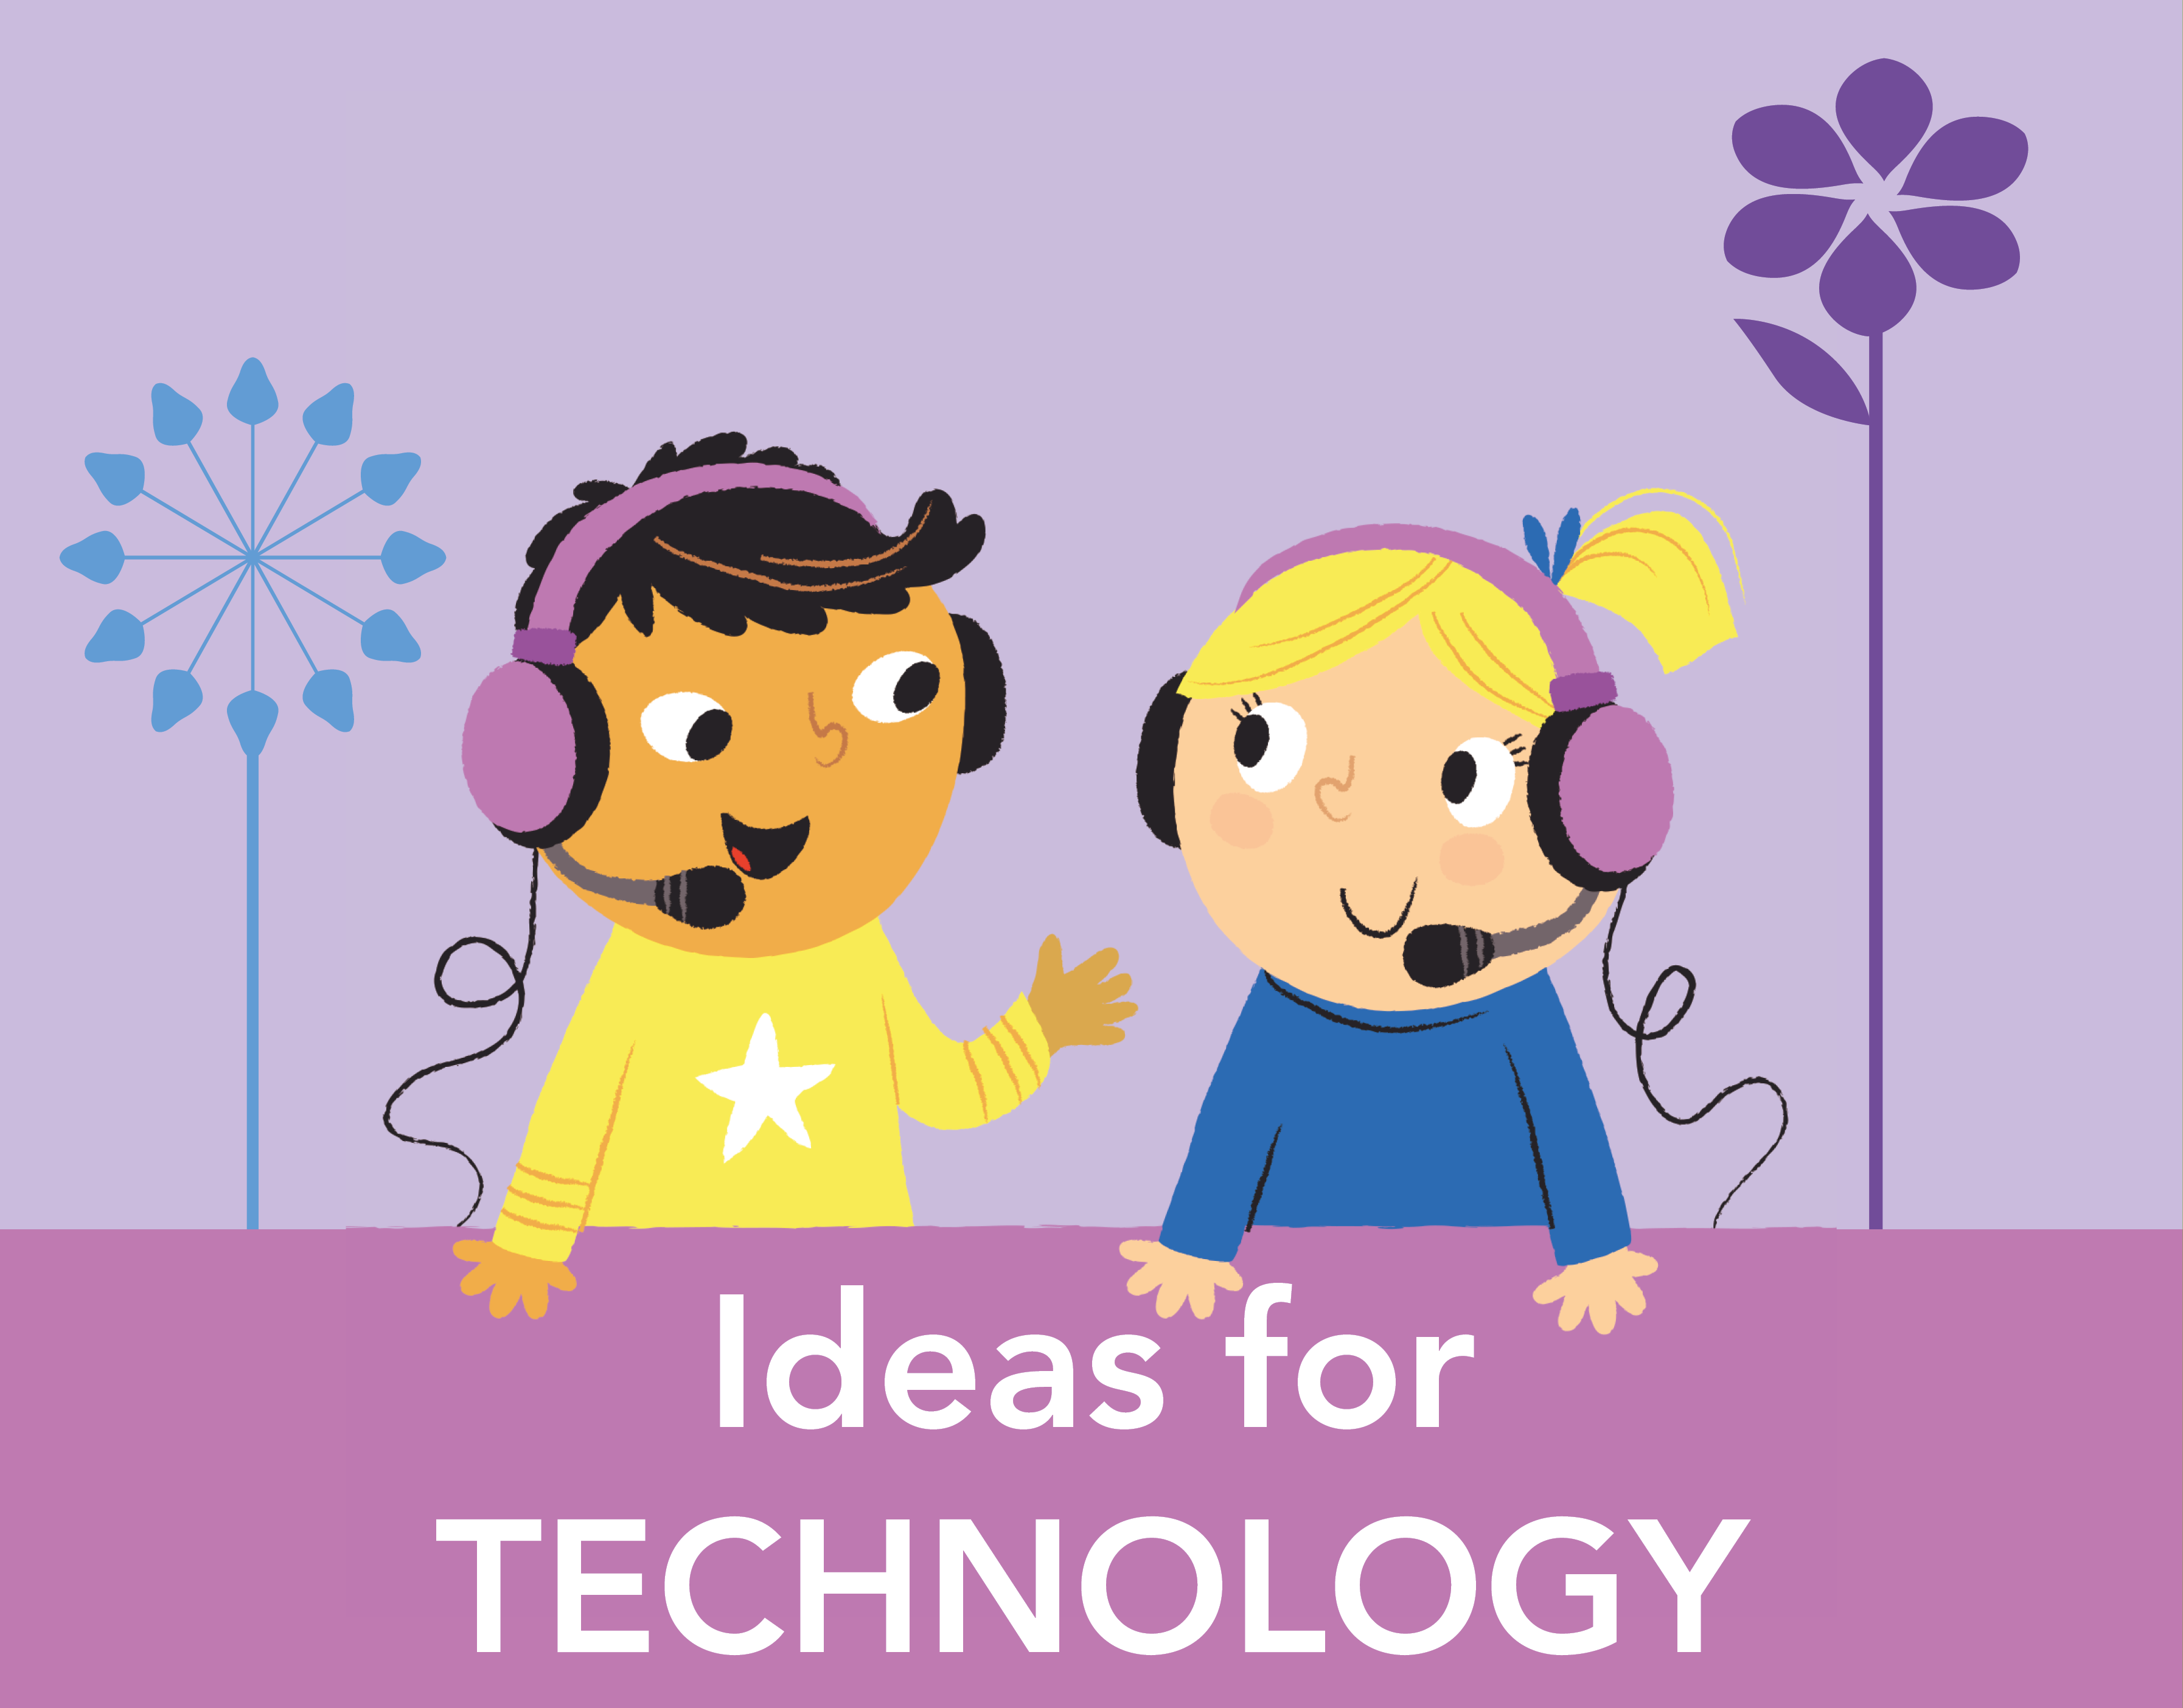 Ideas for Technology